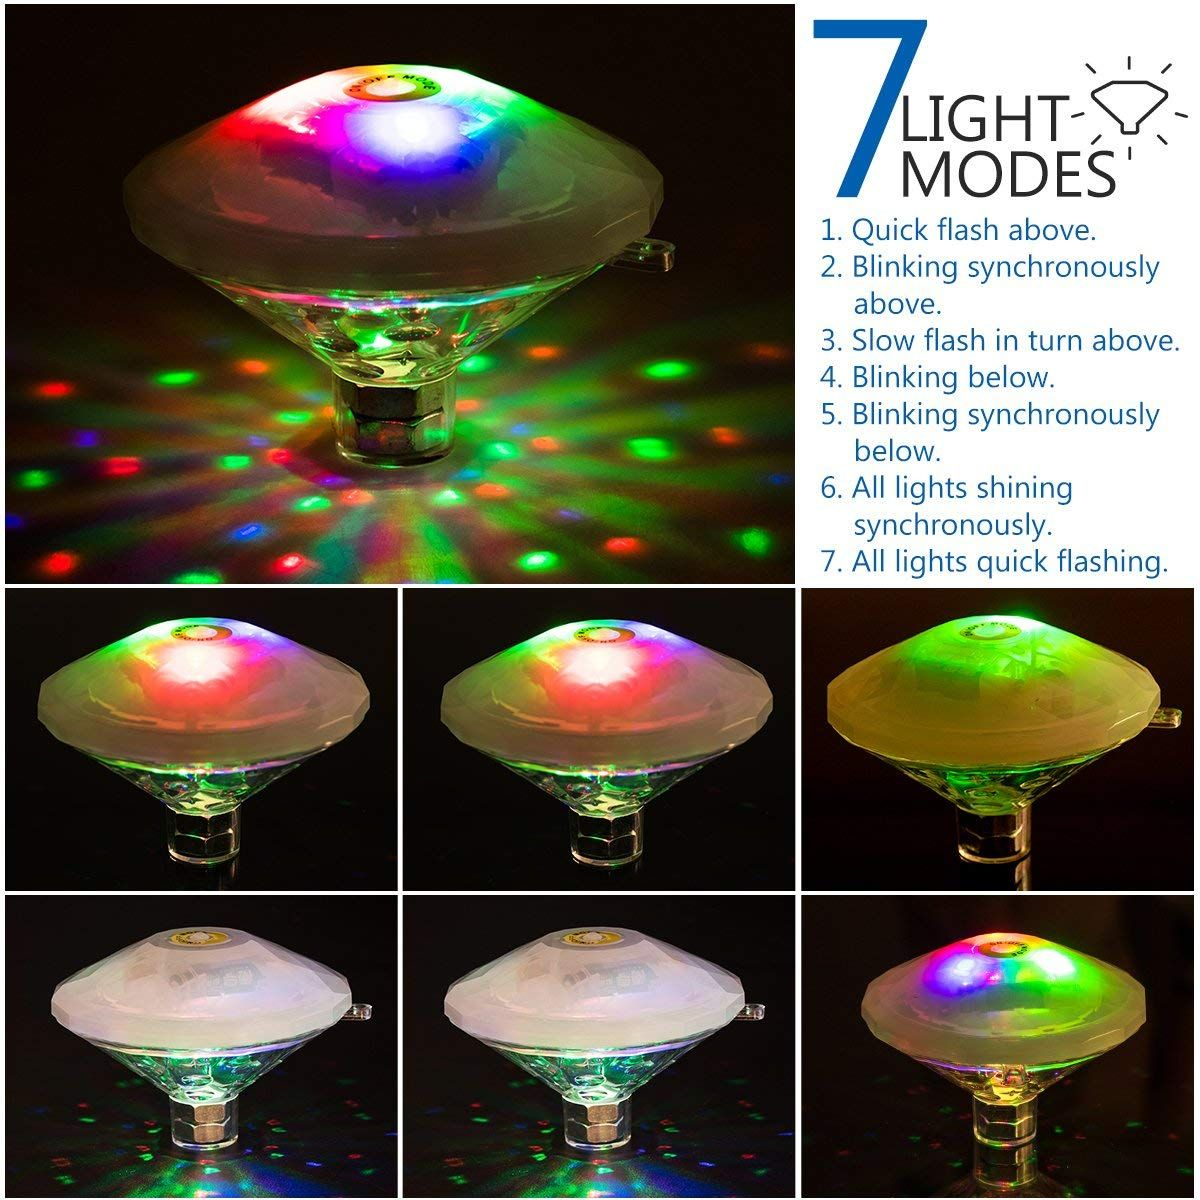 Led Underwater Lights Clever 3 Led Battery Waterproof Pool Pond Lighting Remote Control Submersible Light Led Lamps